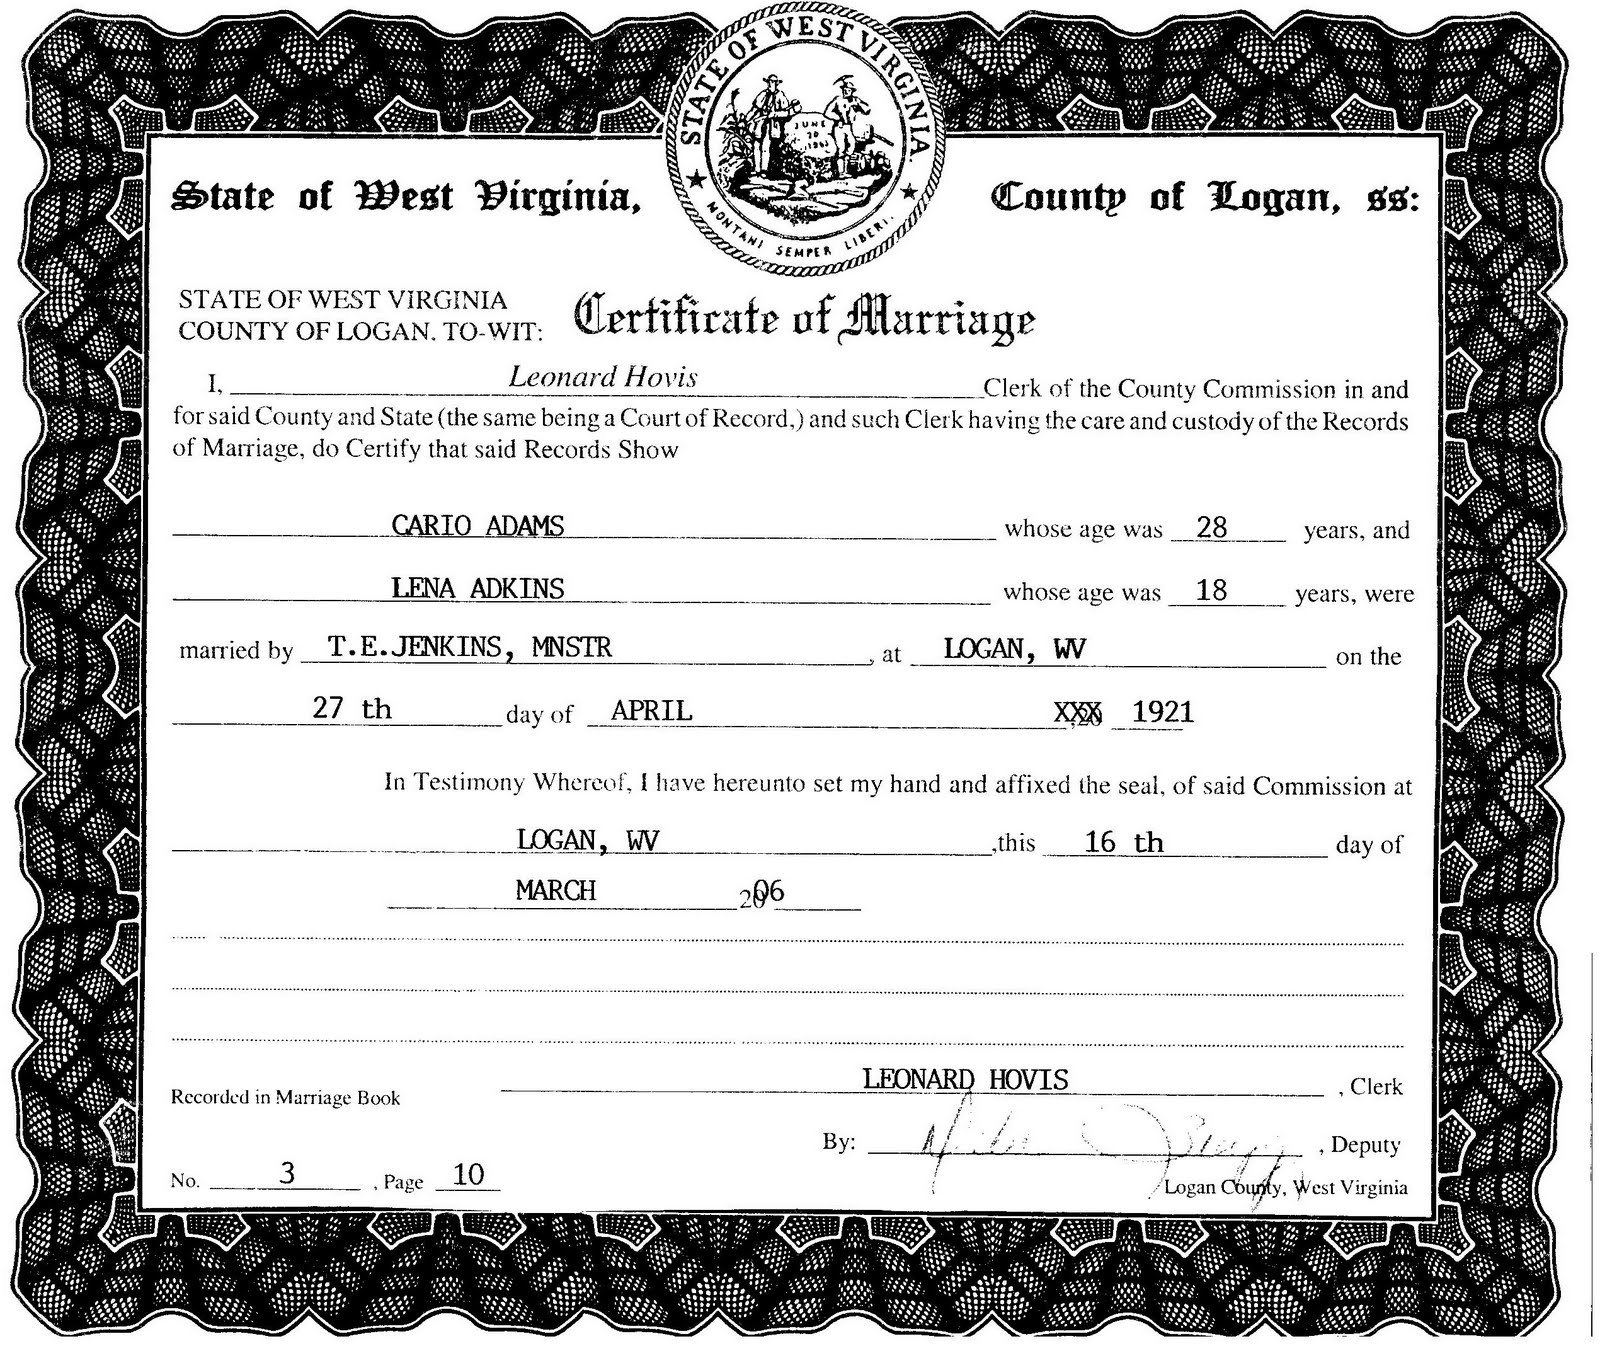 Marriage Records: Marriage Certificate Of Karo Adams And Lena Adkins